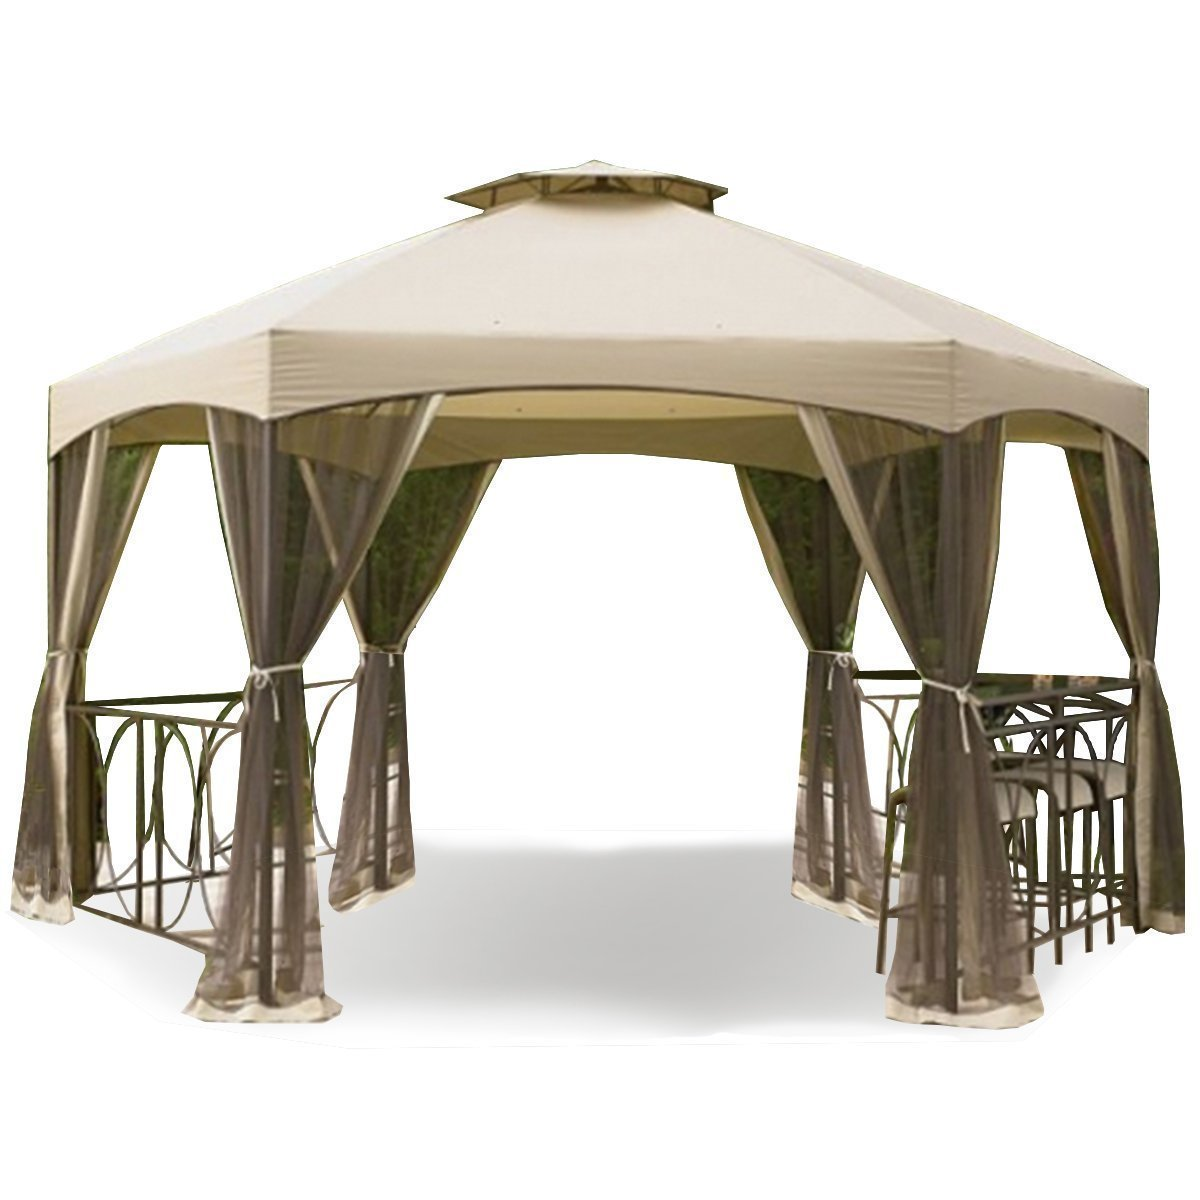 Garden Winds LCM823BUGF-RS Dutch Harbor Gazebo RipLock 500 Replacement Canopy, Beige